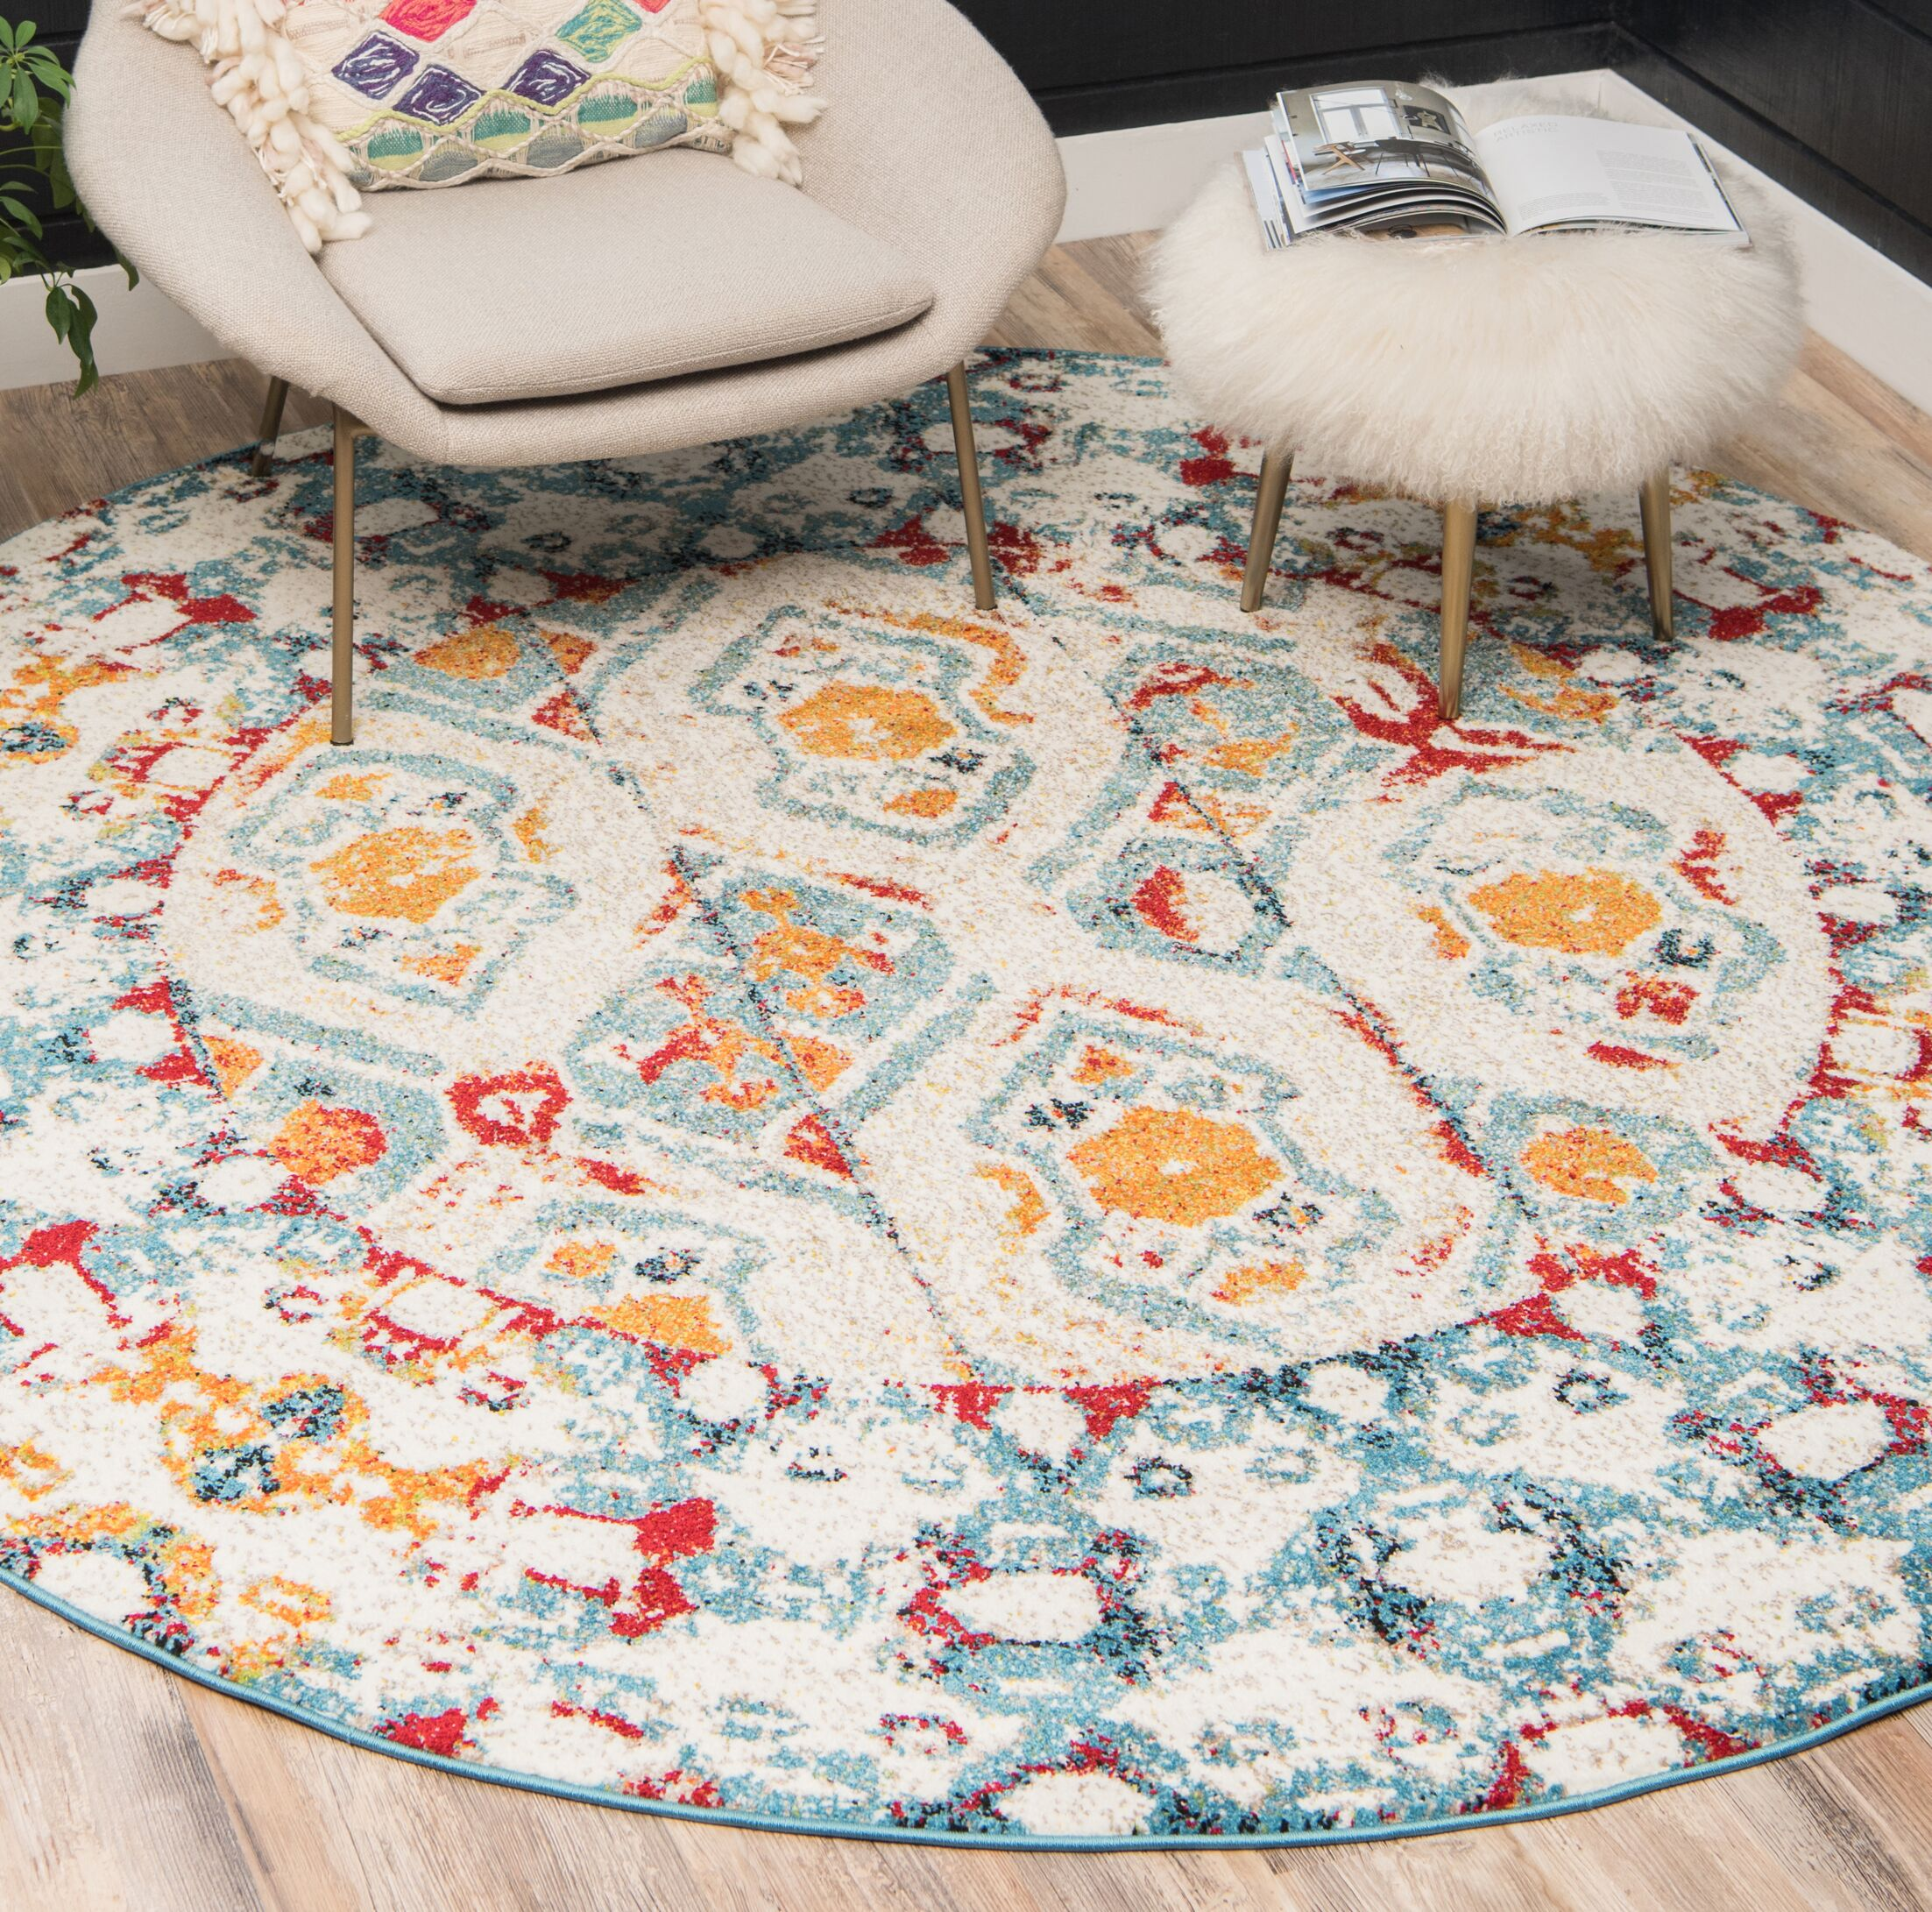 Hartell Blue/Yellow Area Rug Rug Size: Round 8'